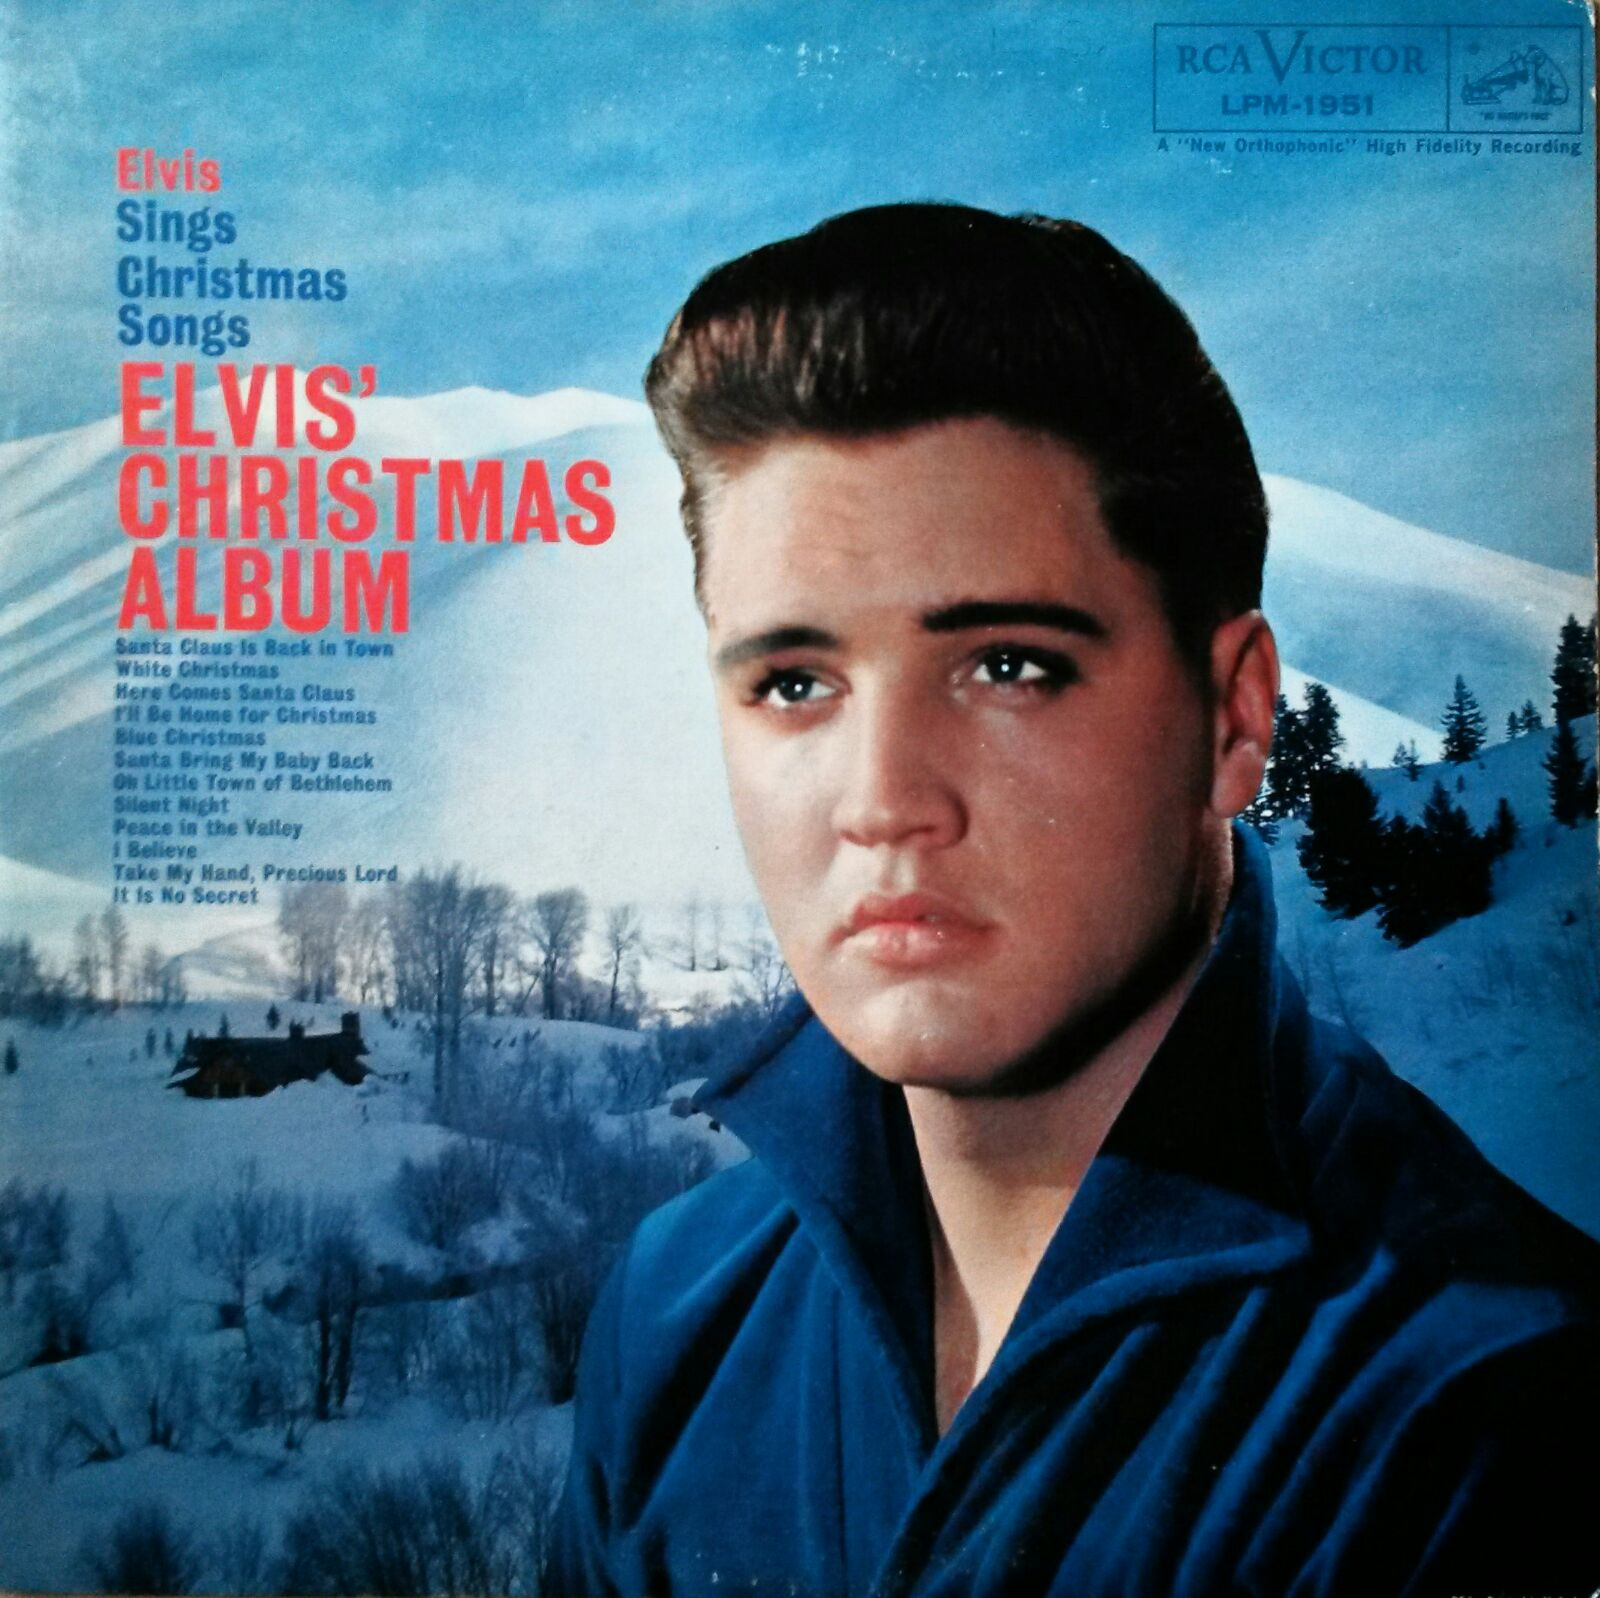 ELVIS' CHRISTMAS ALBUM Whatsapp-image-201605h5qfc